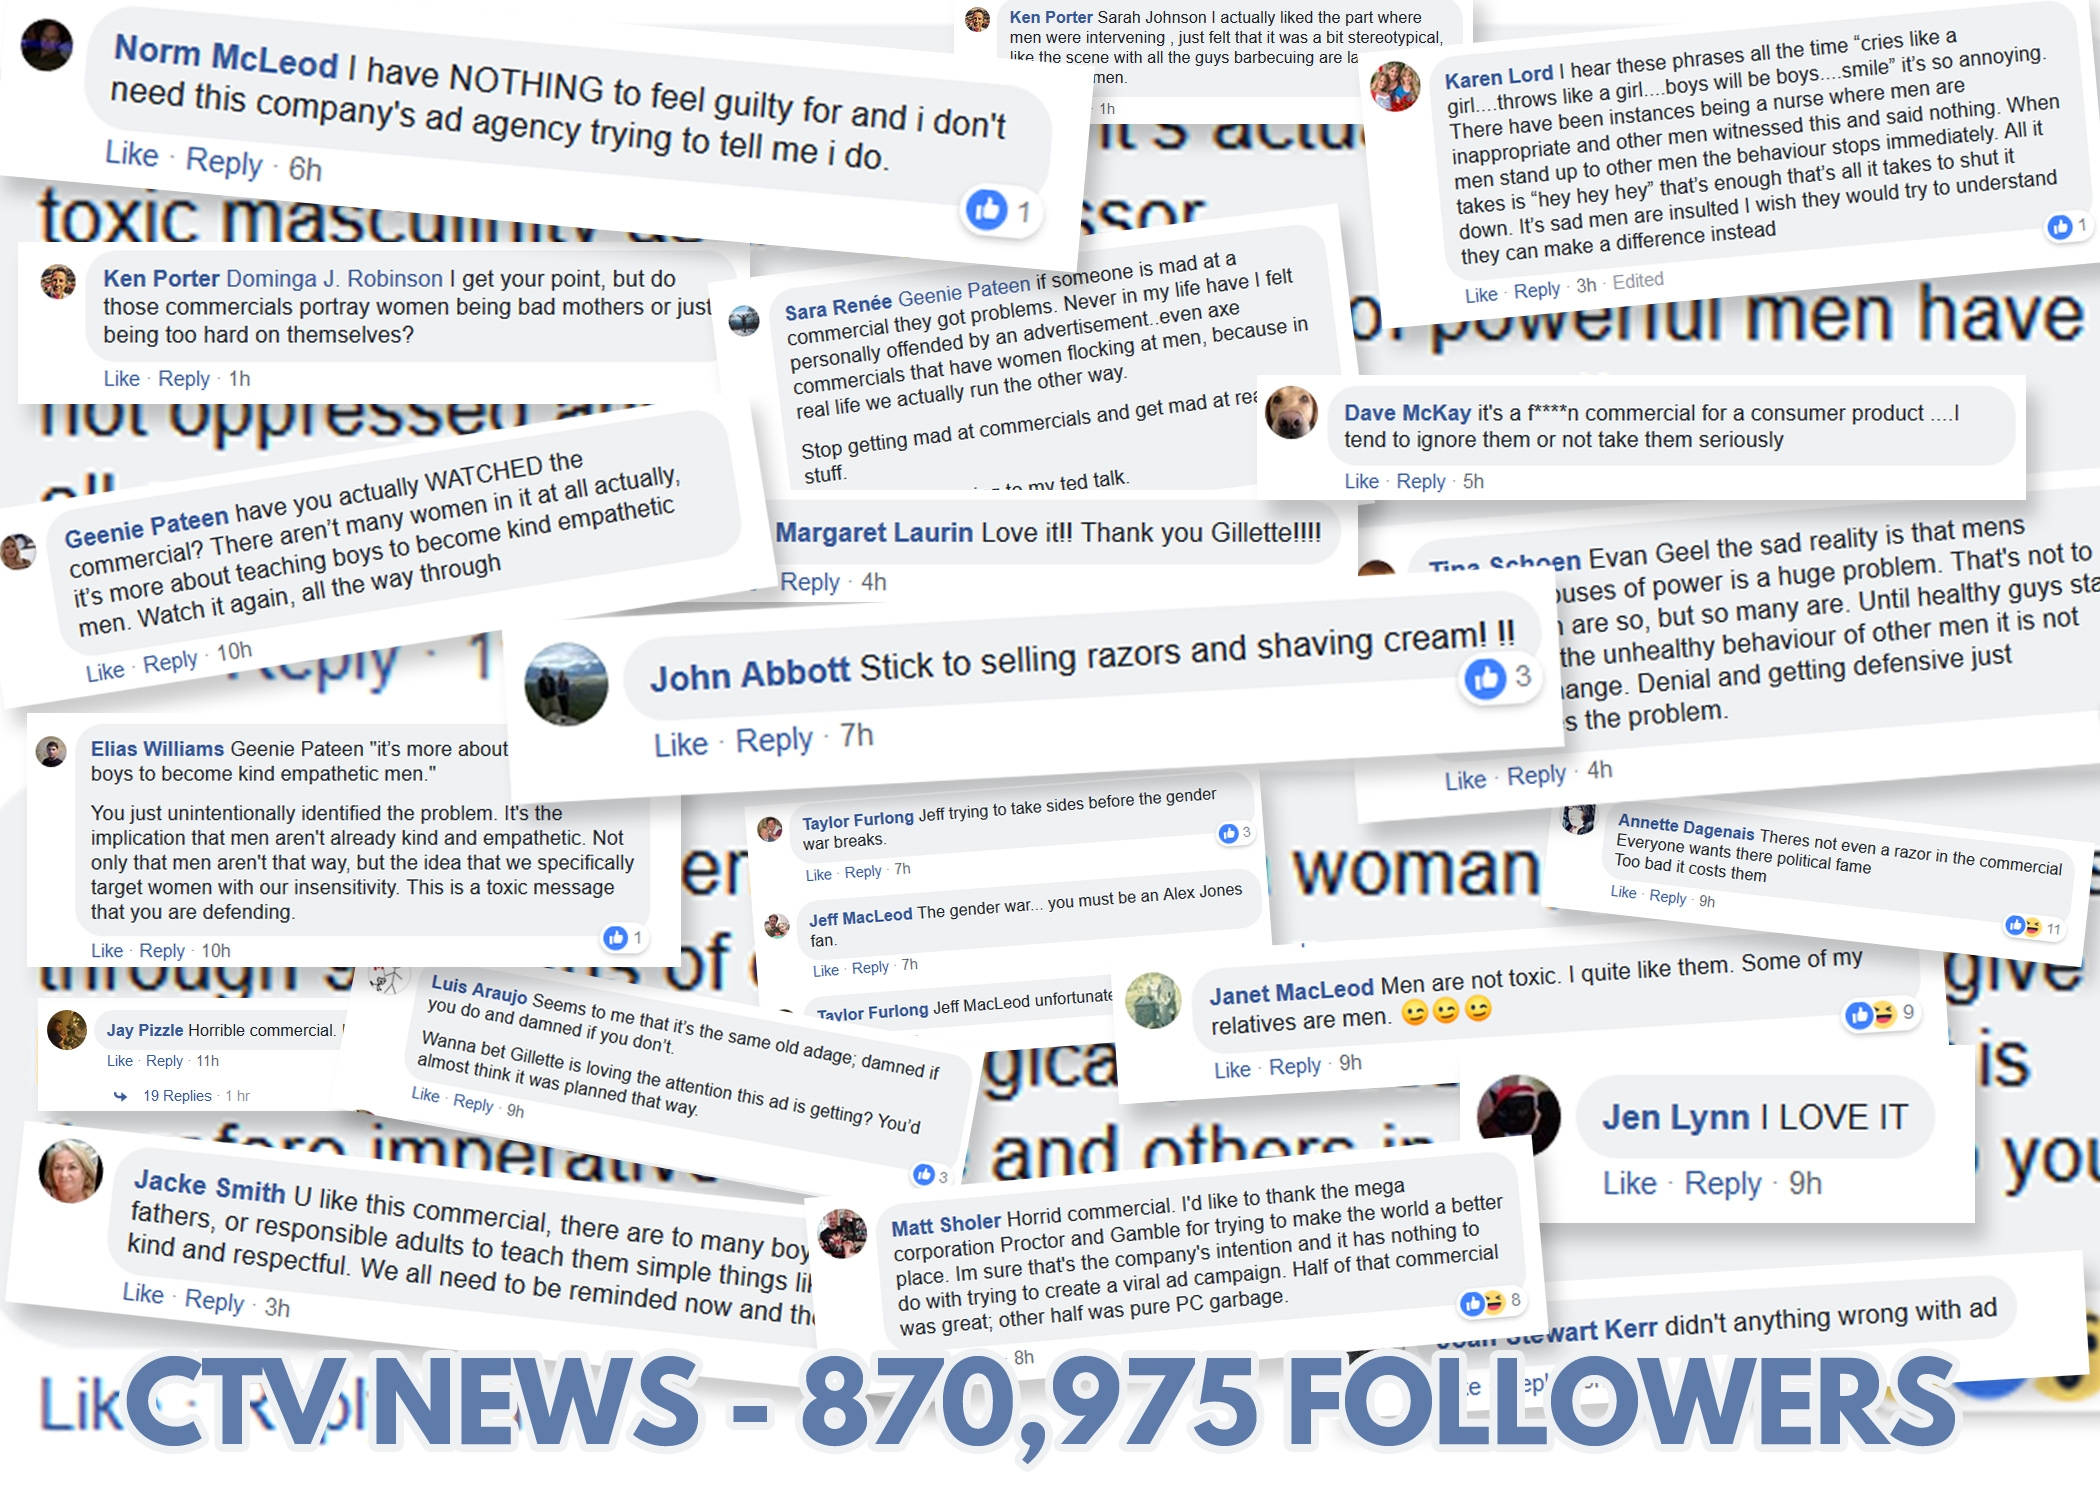 CTV News (not to be confused with CTV News London) has 870,975 followers from coast to coast to coast.